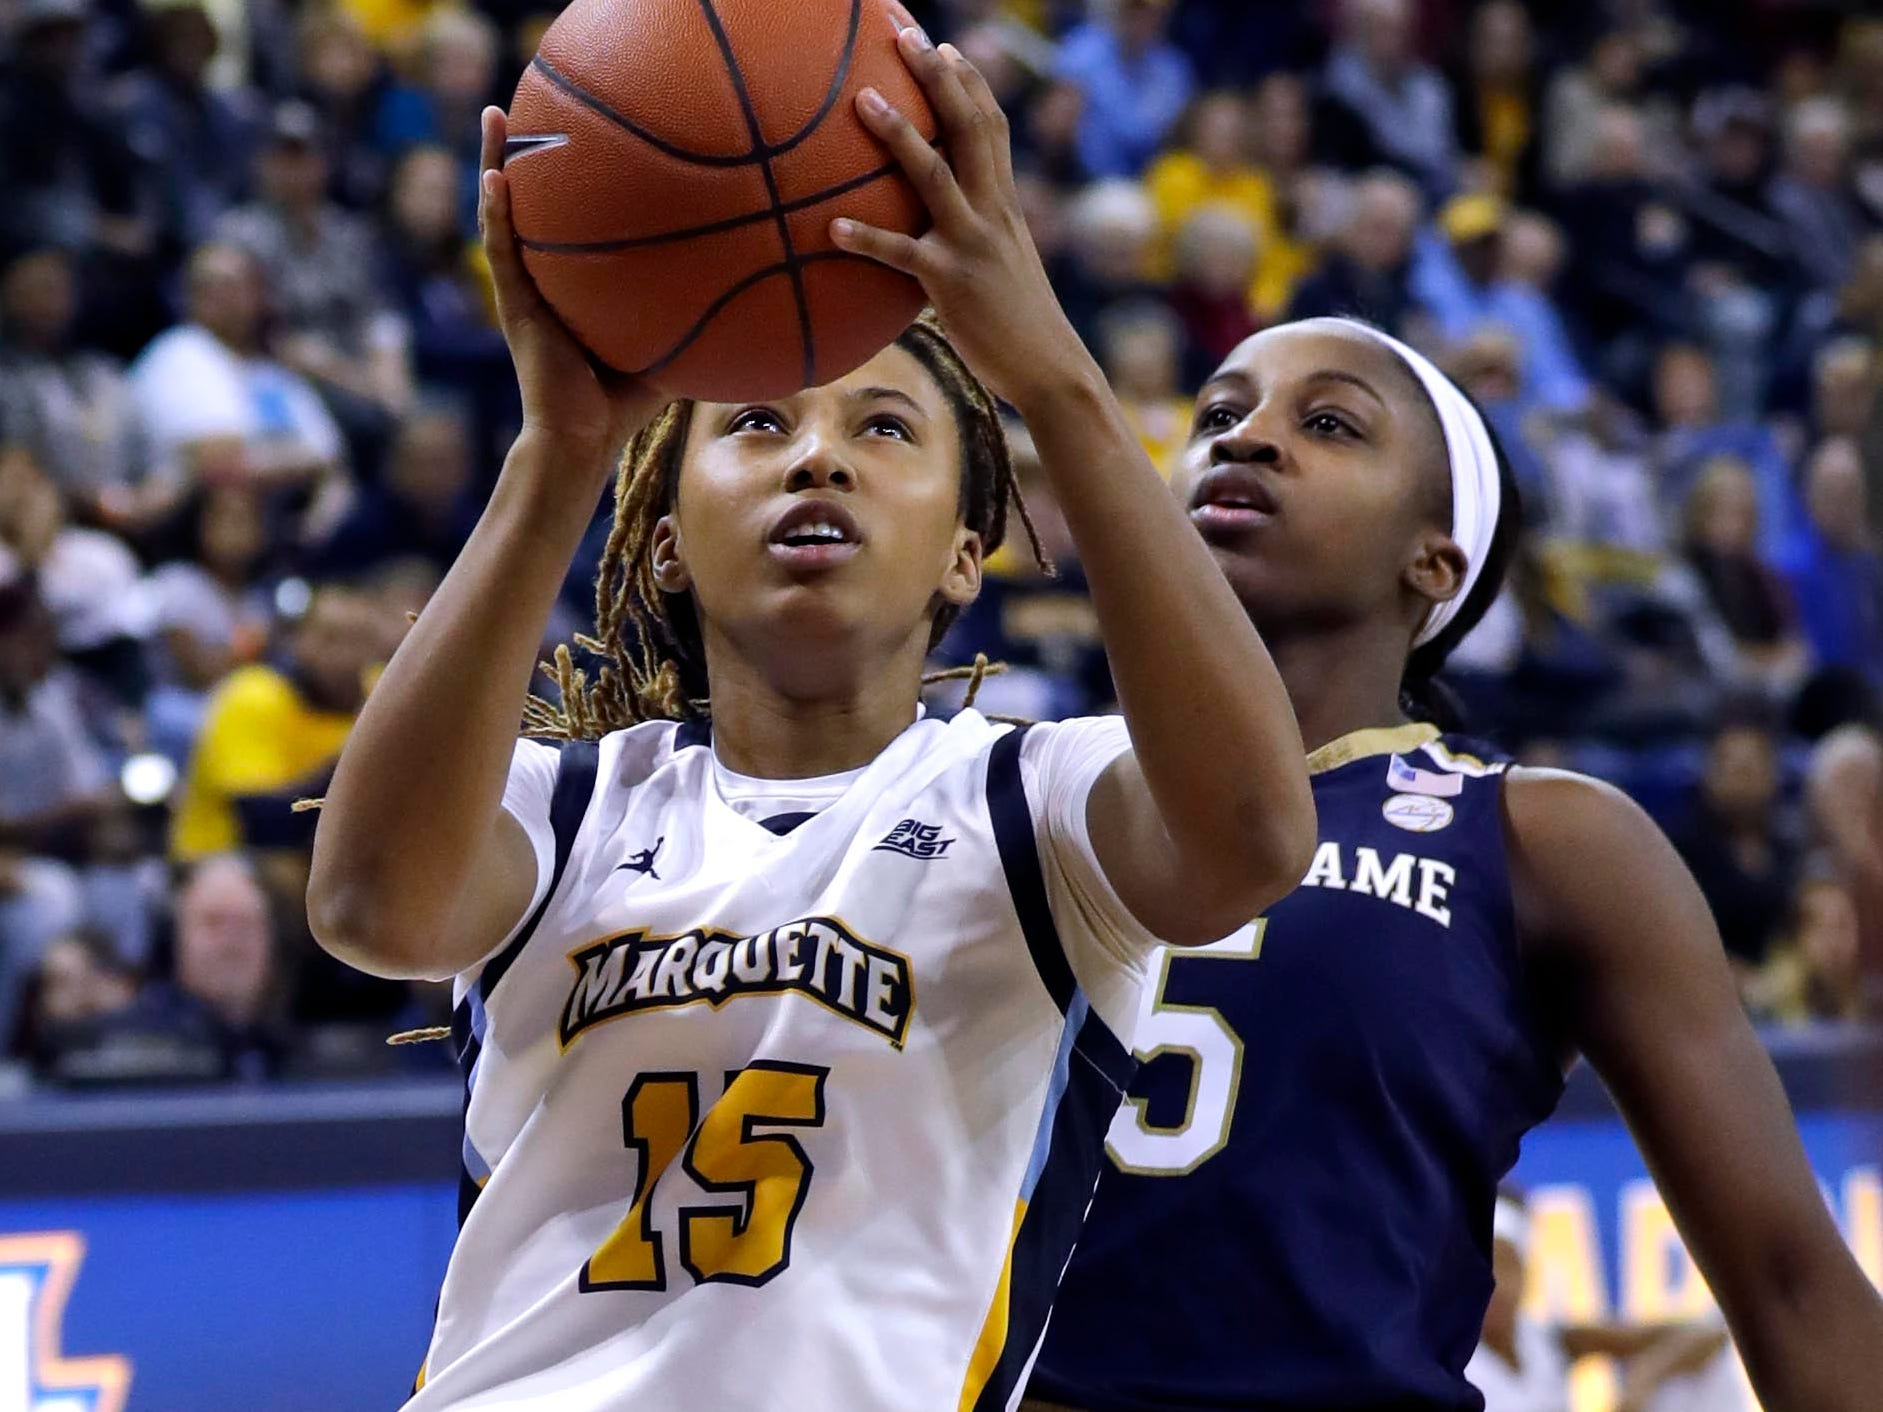 Marquette Golden Eagles guard Amani Wilborn (15) gets past Notre Dame Fighting Irish guard Jackie Young (5) for a score during the women's basketball  game  between Marquette and Notre Dame. Notre Dame, the the defending national champion, which won the game 87-63, is led by former DSHA star Arike Ogunbowale. MU is also a top-25 team expected to win the Big East.   MILWAUKEE JOURNAL SENTINEL/RICK WOOD ORG XMIT: 20097356A